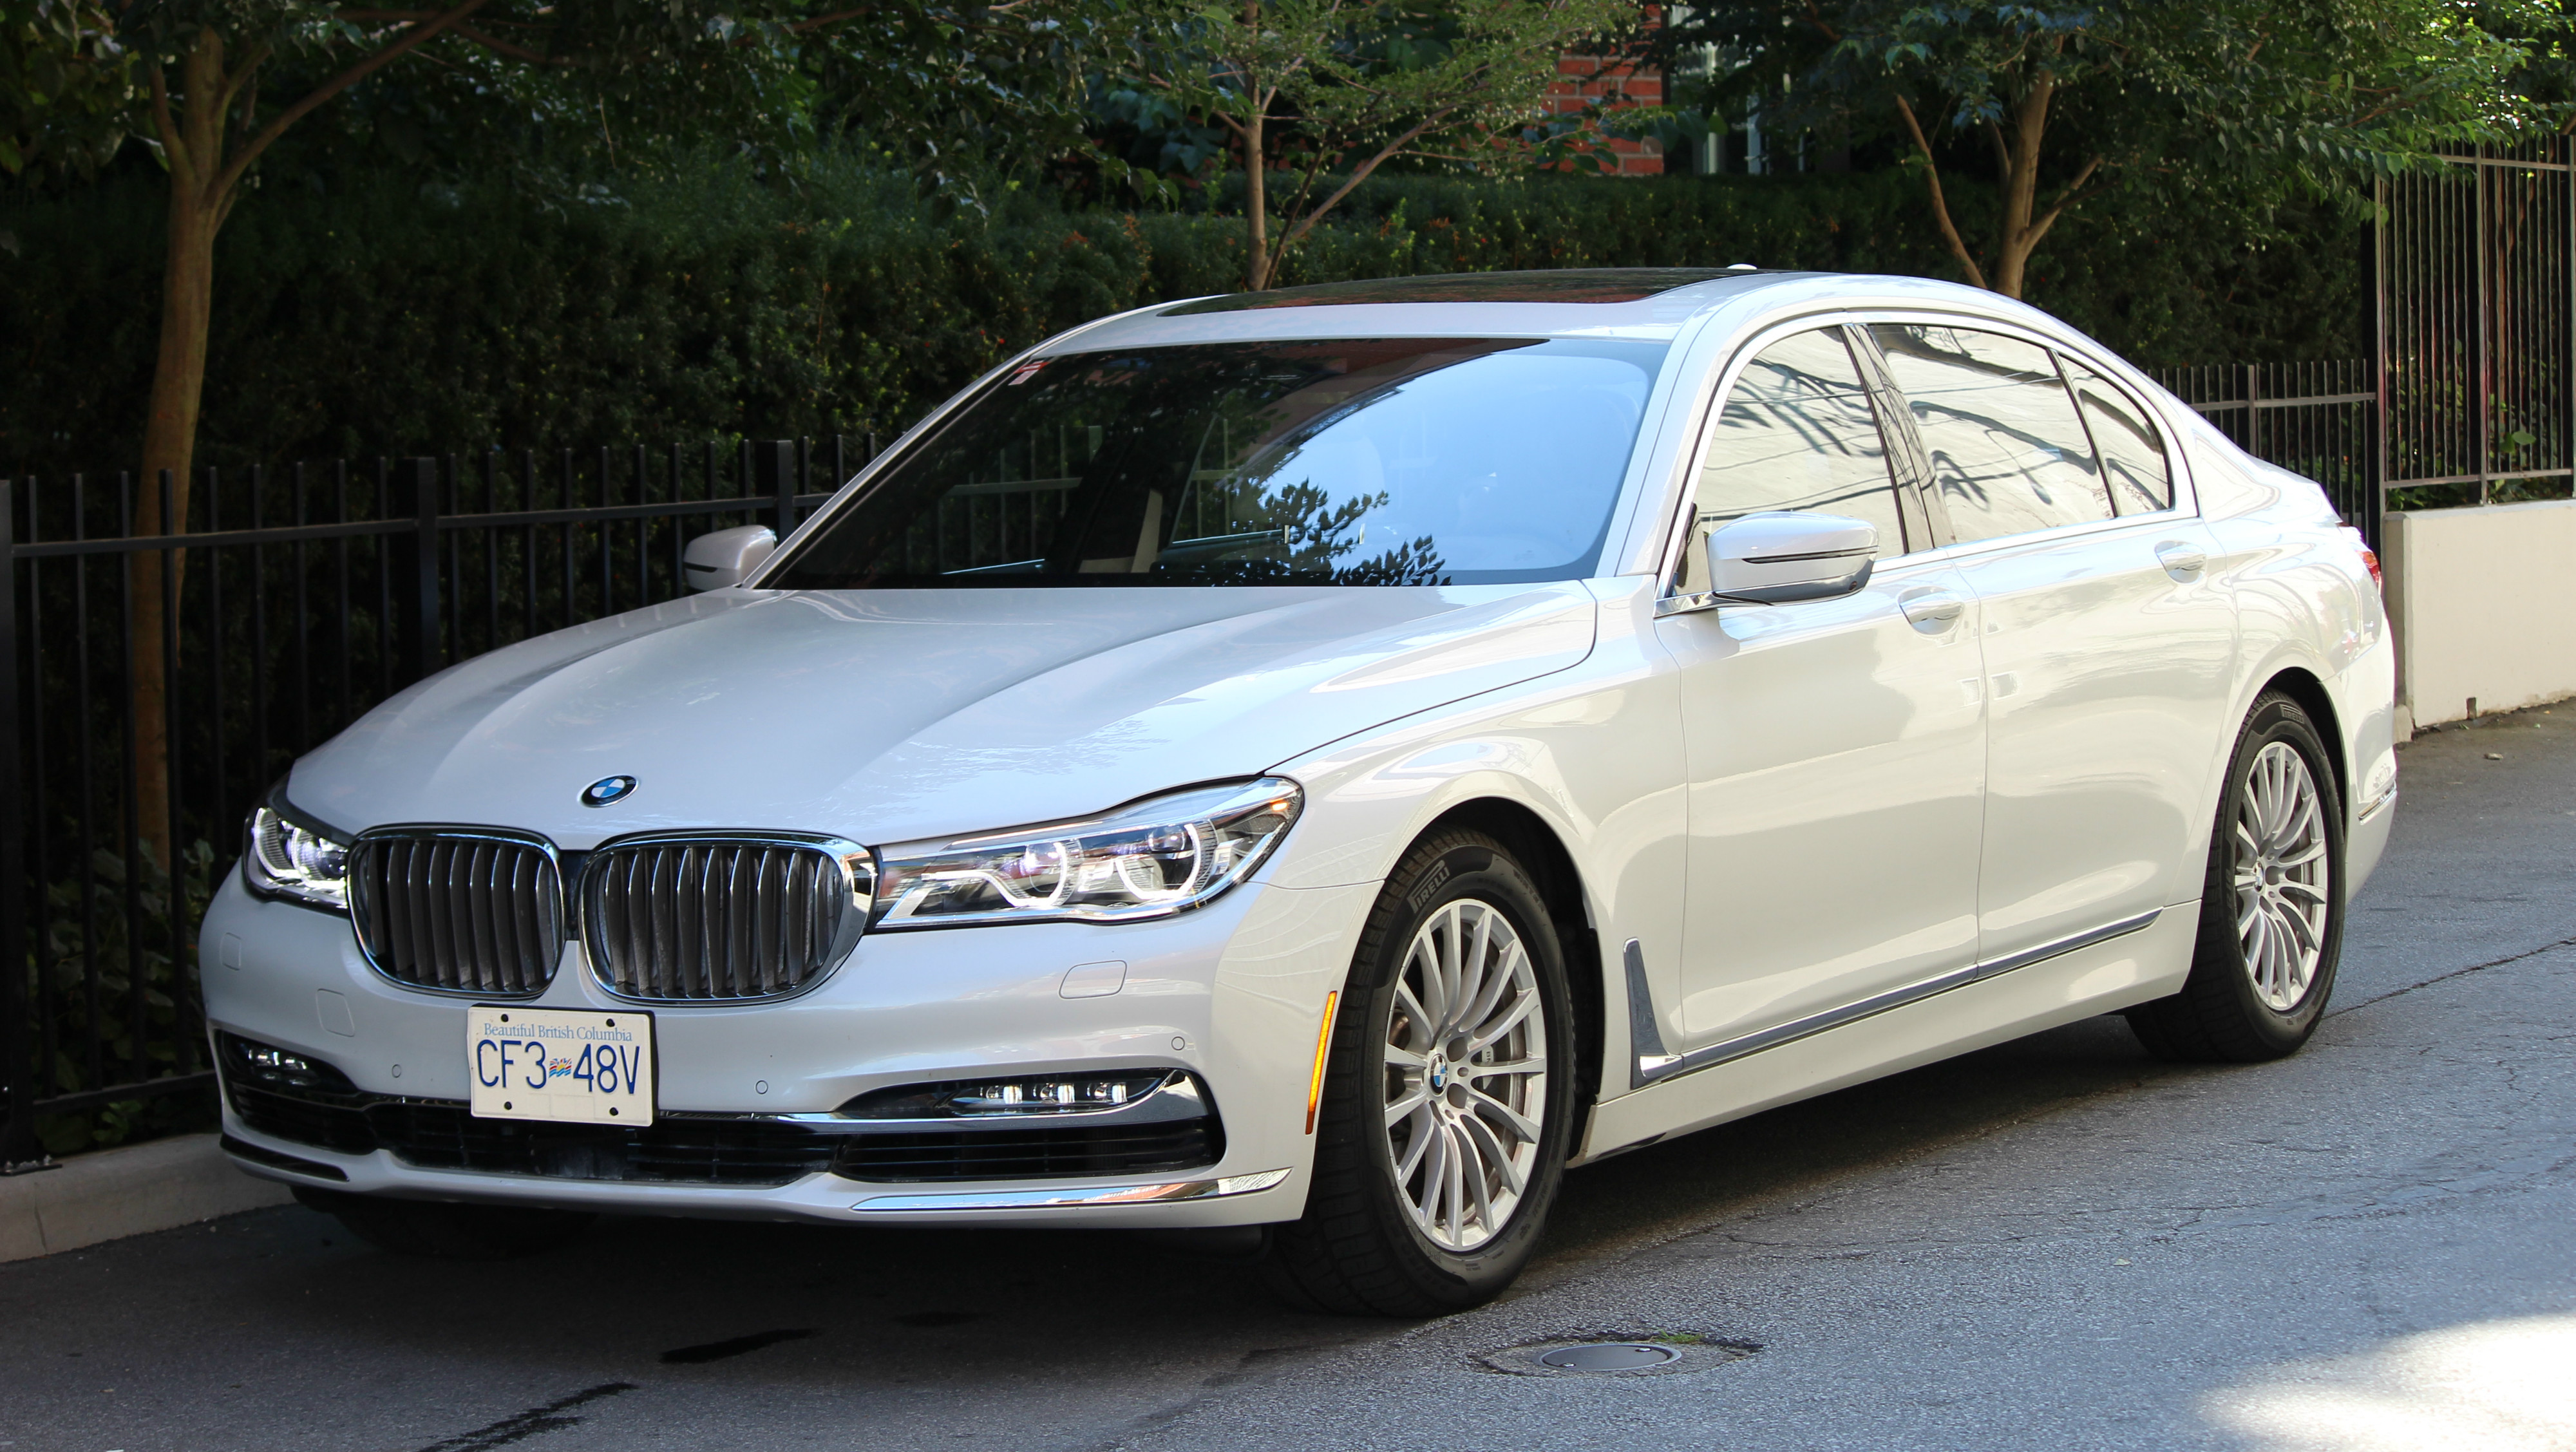 Top 10 Features And Tech On The 2016 BMW 750Li WHEELSca